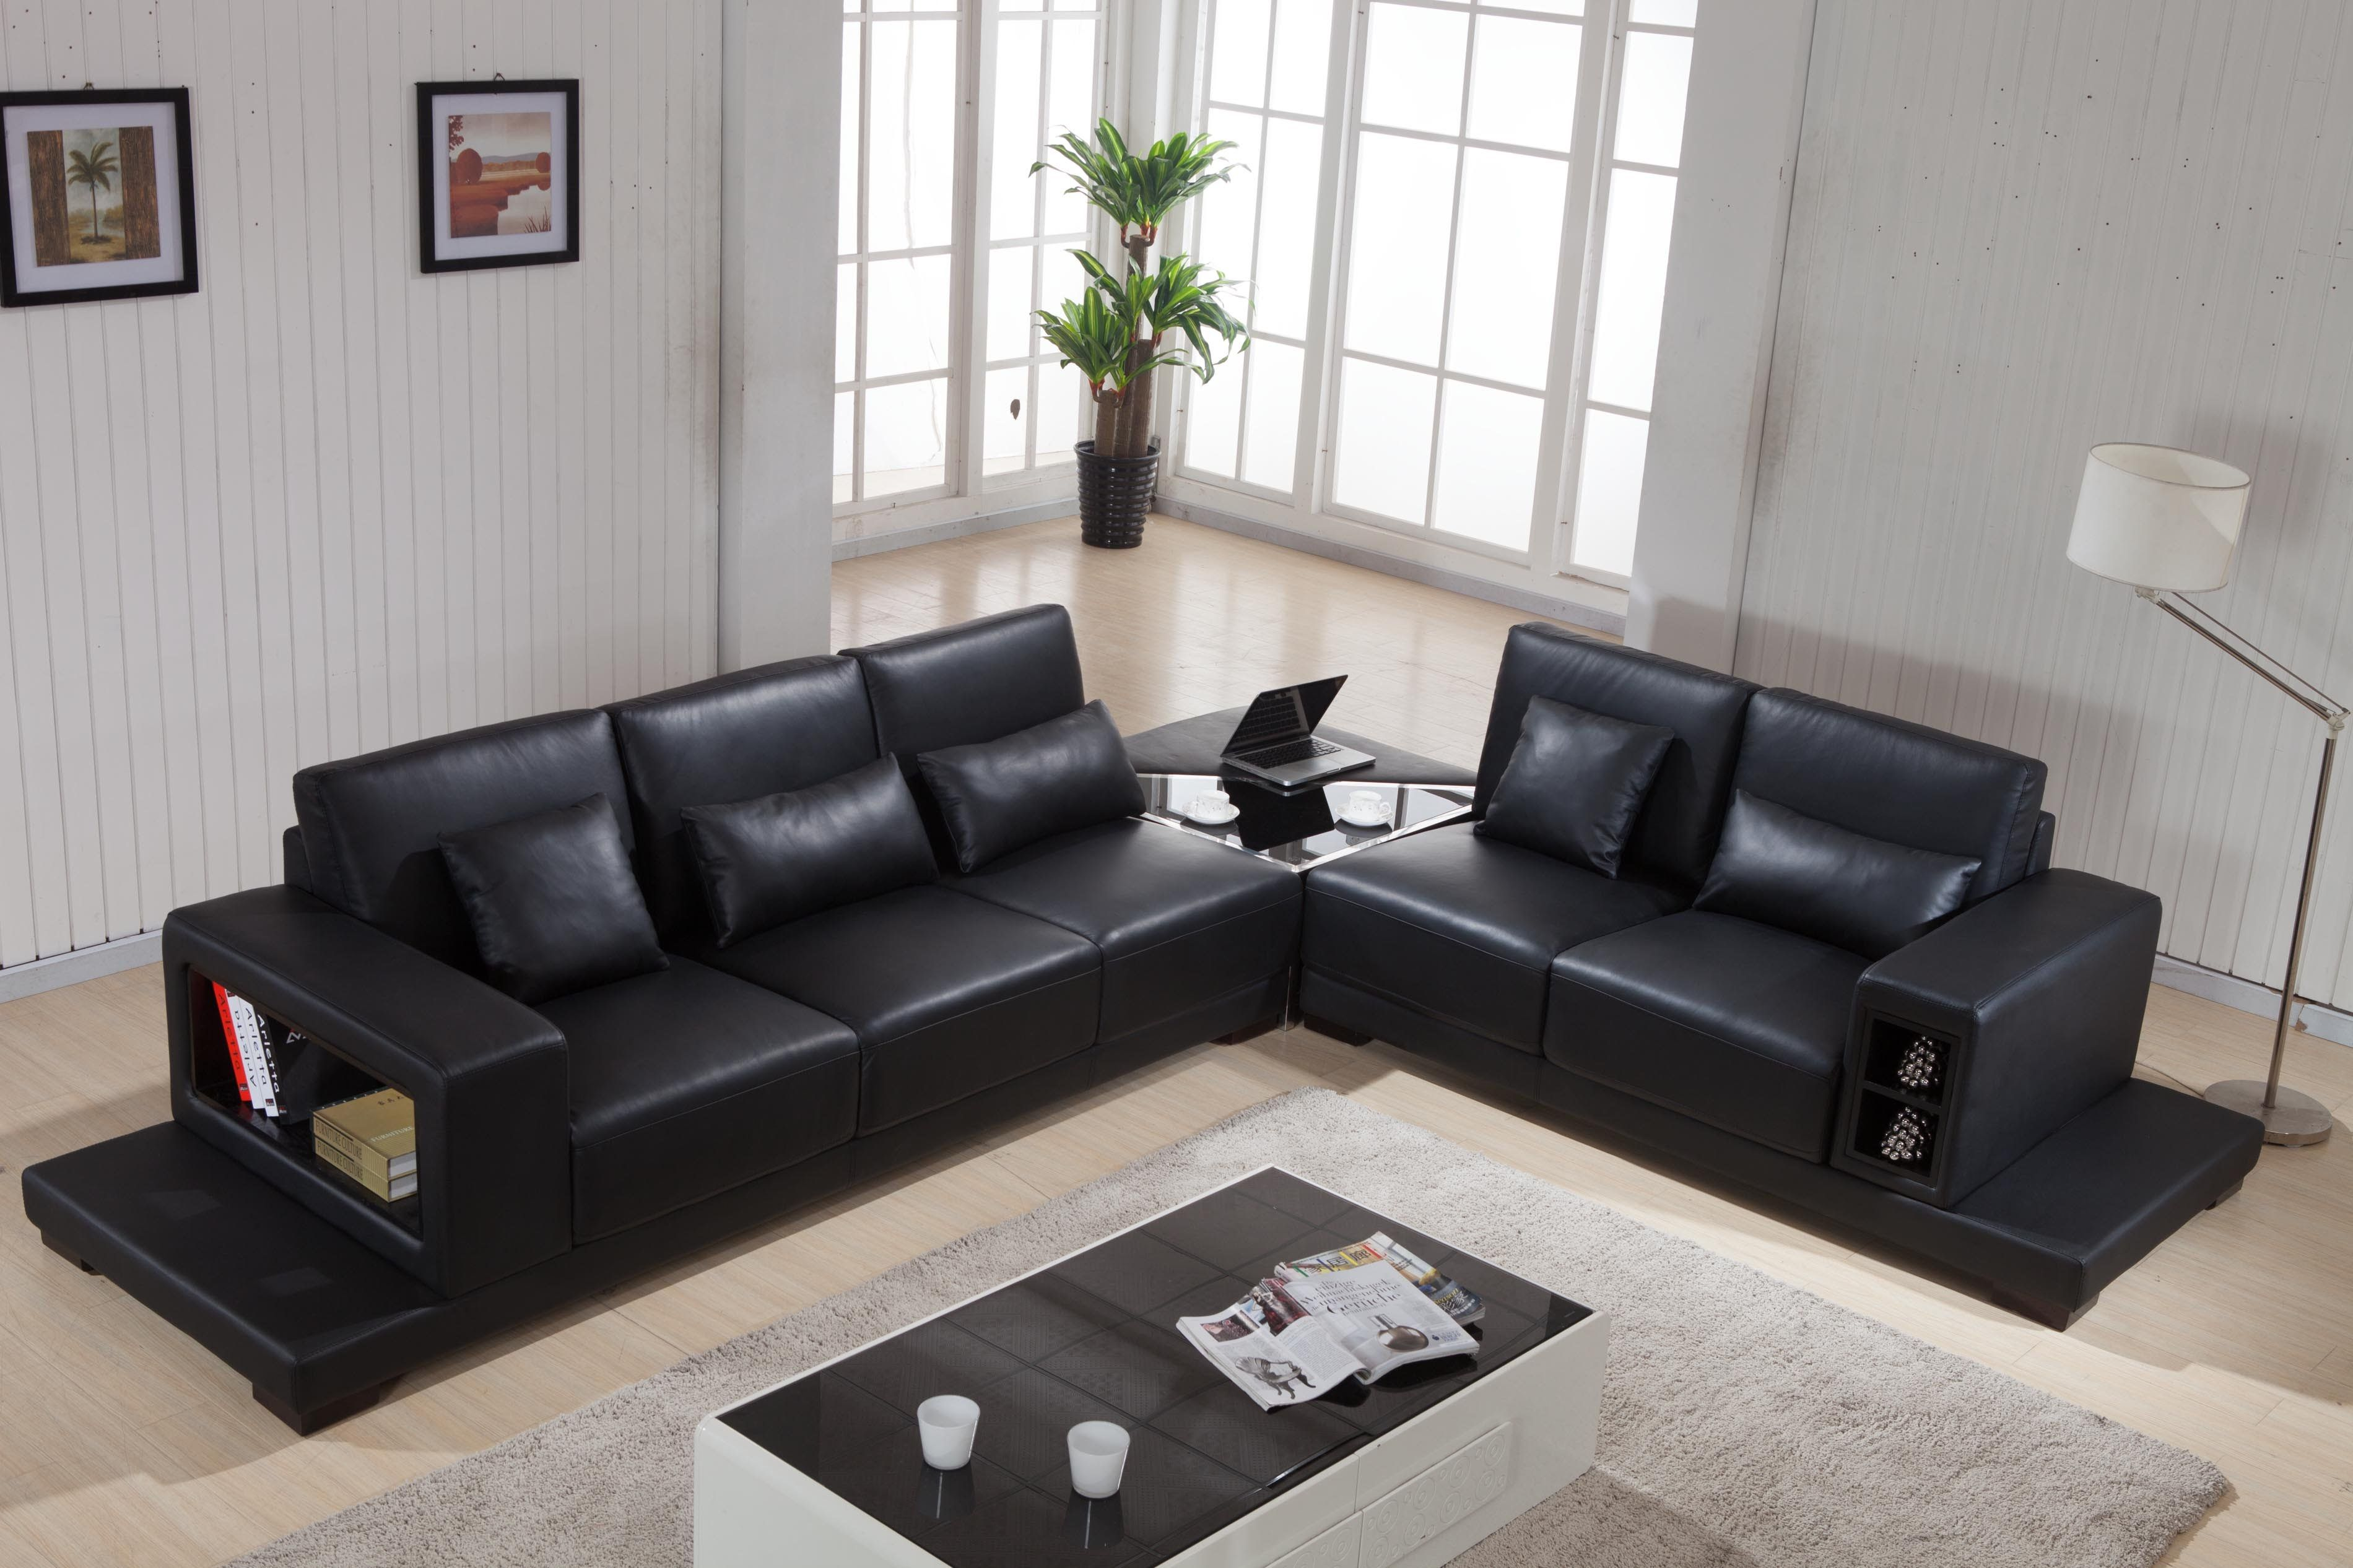 Sofa Sofas For Sale Near Me In 2020 With Images Leather Sofa